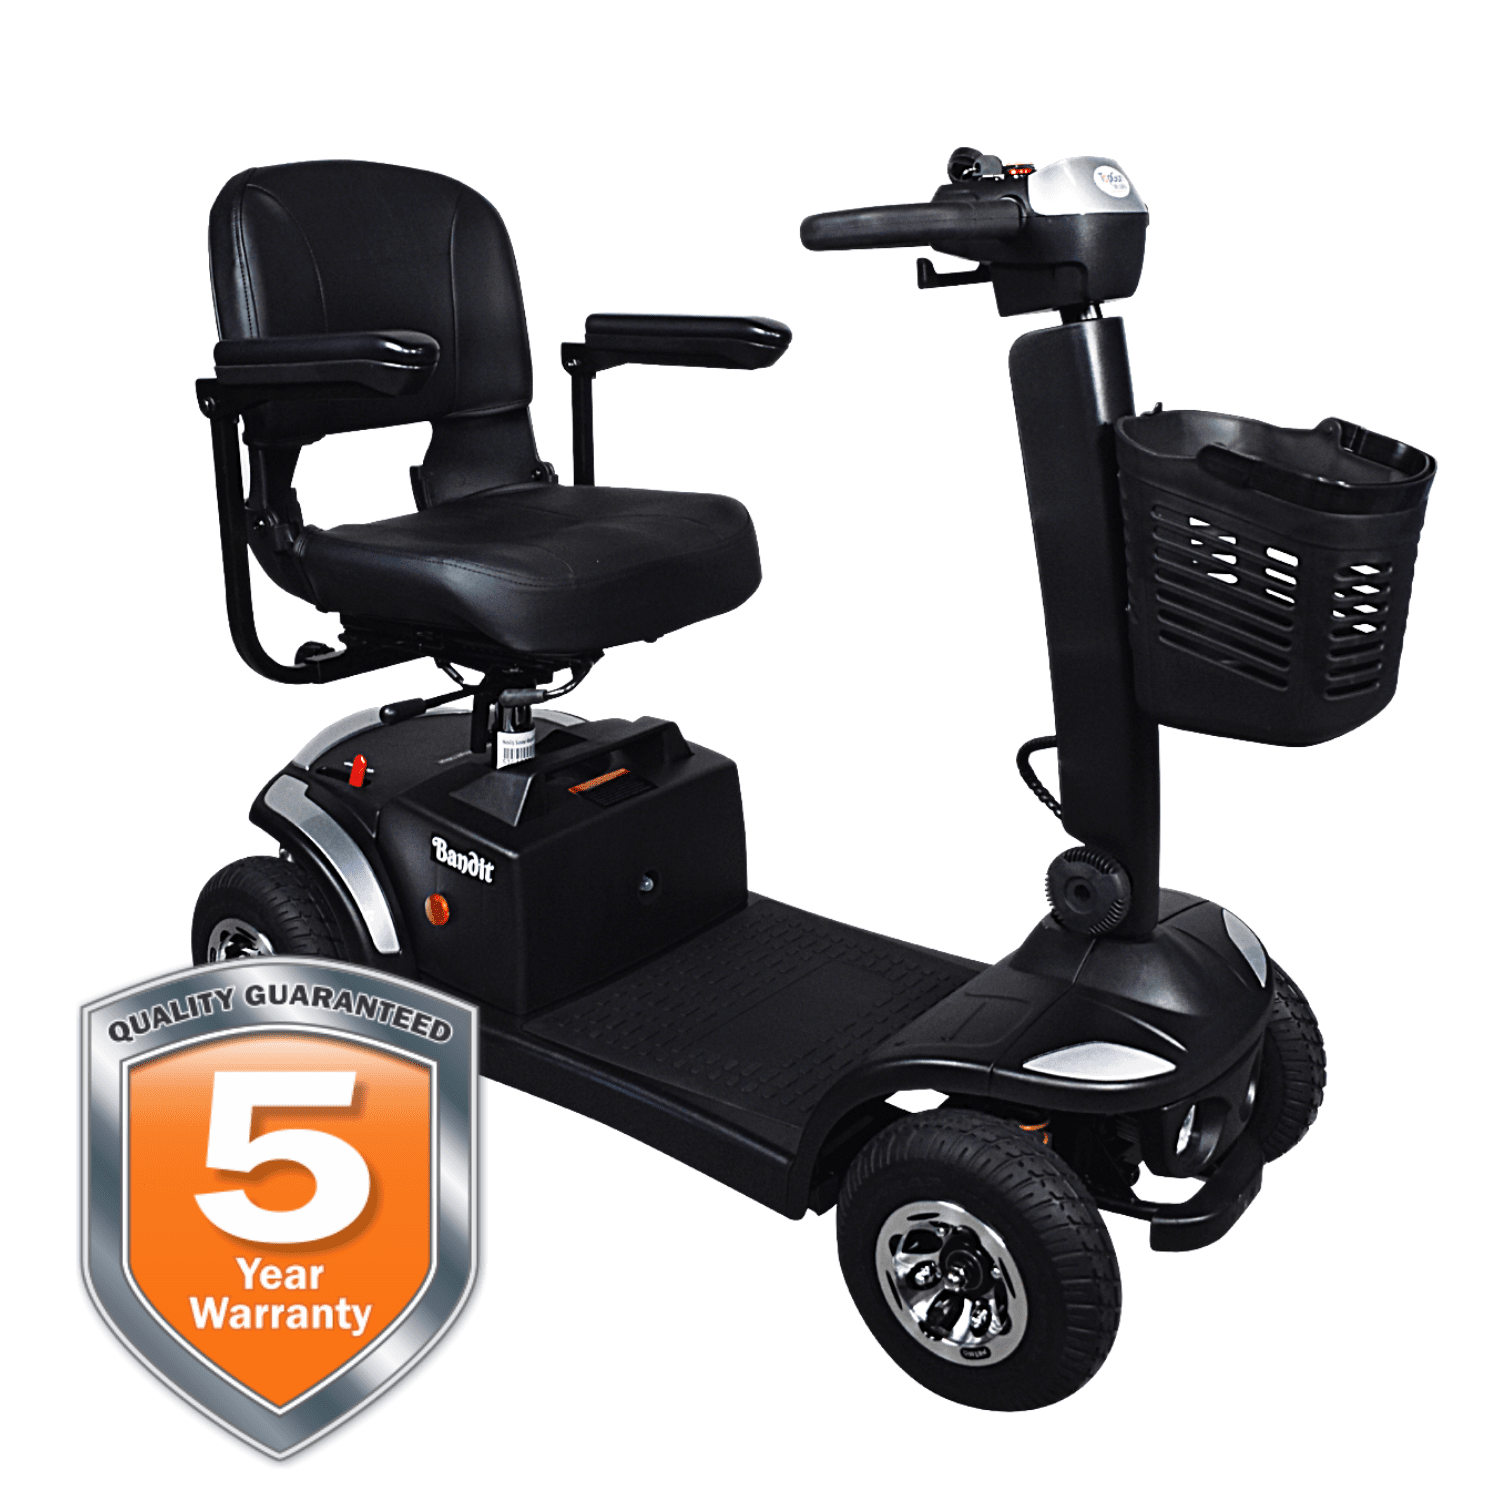 Top Gun Bandit Mobility Scooter- Product Image